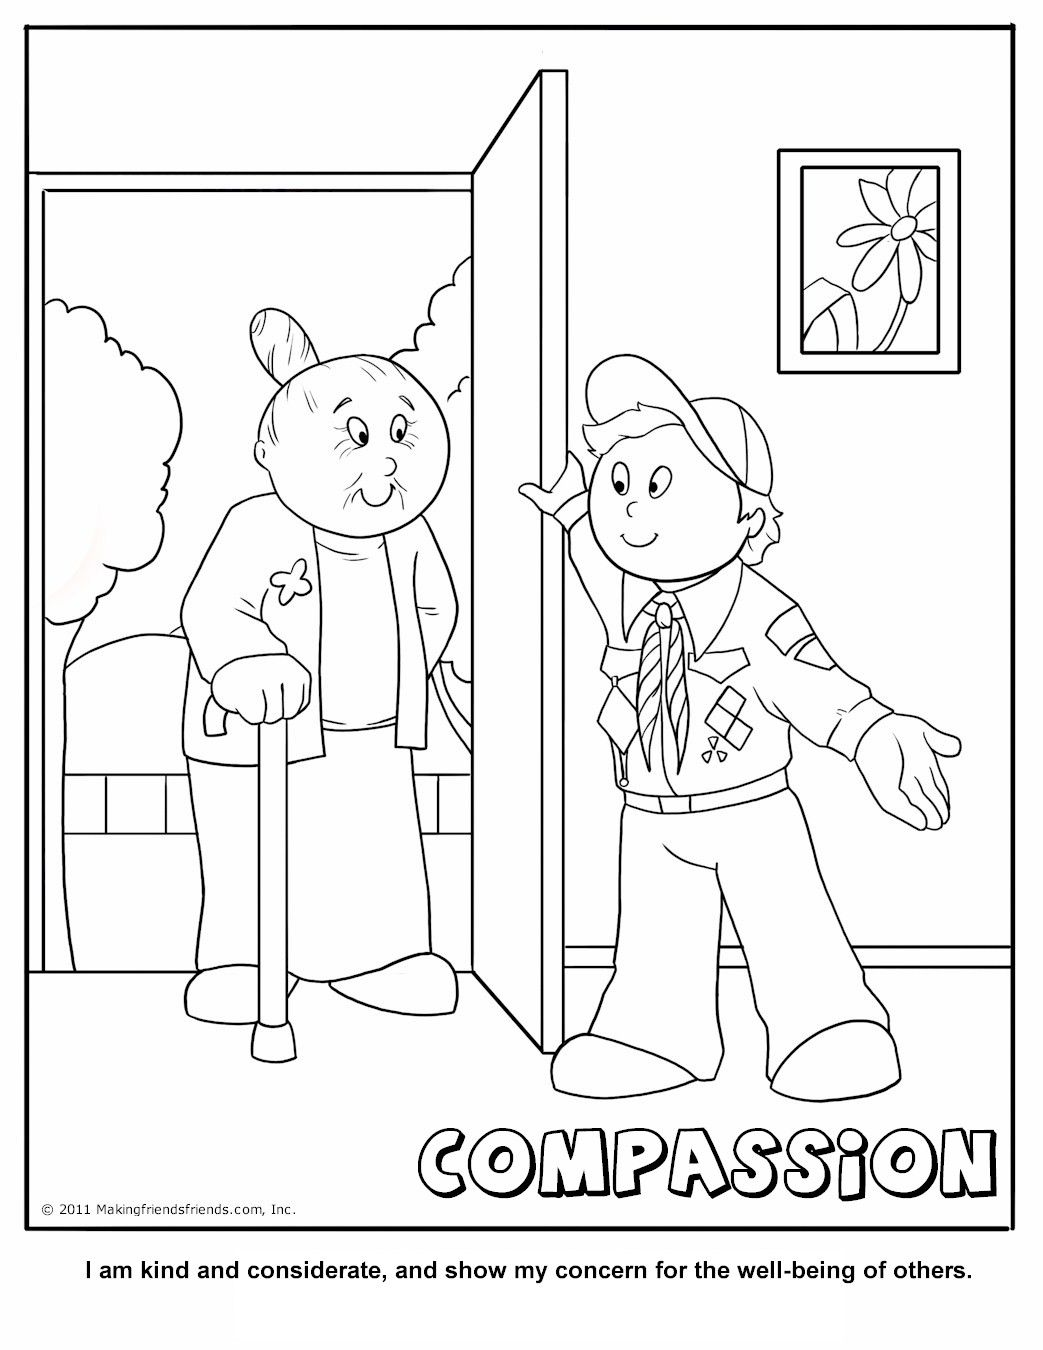 Compassion Coloring Page A Cub Scouting Core Value